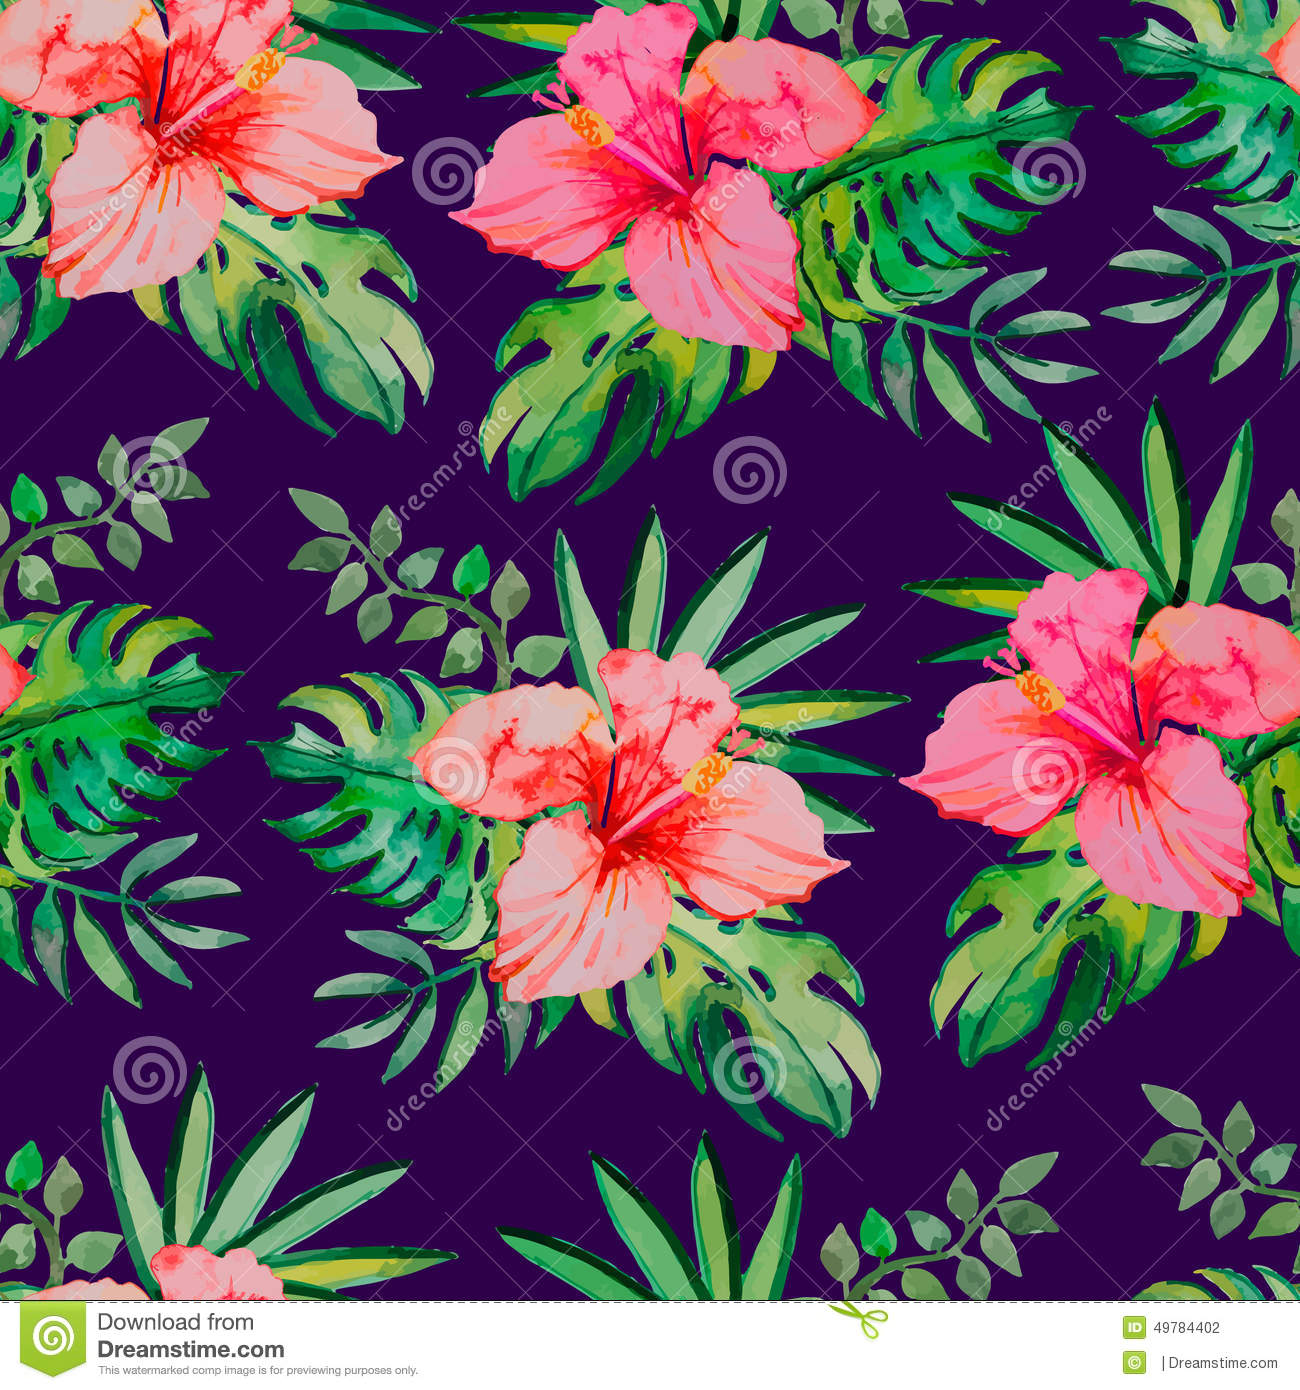 Tropical flowers and leaves for your design.